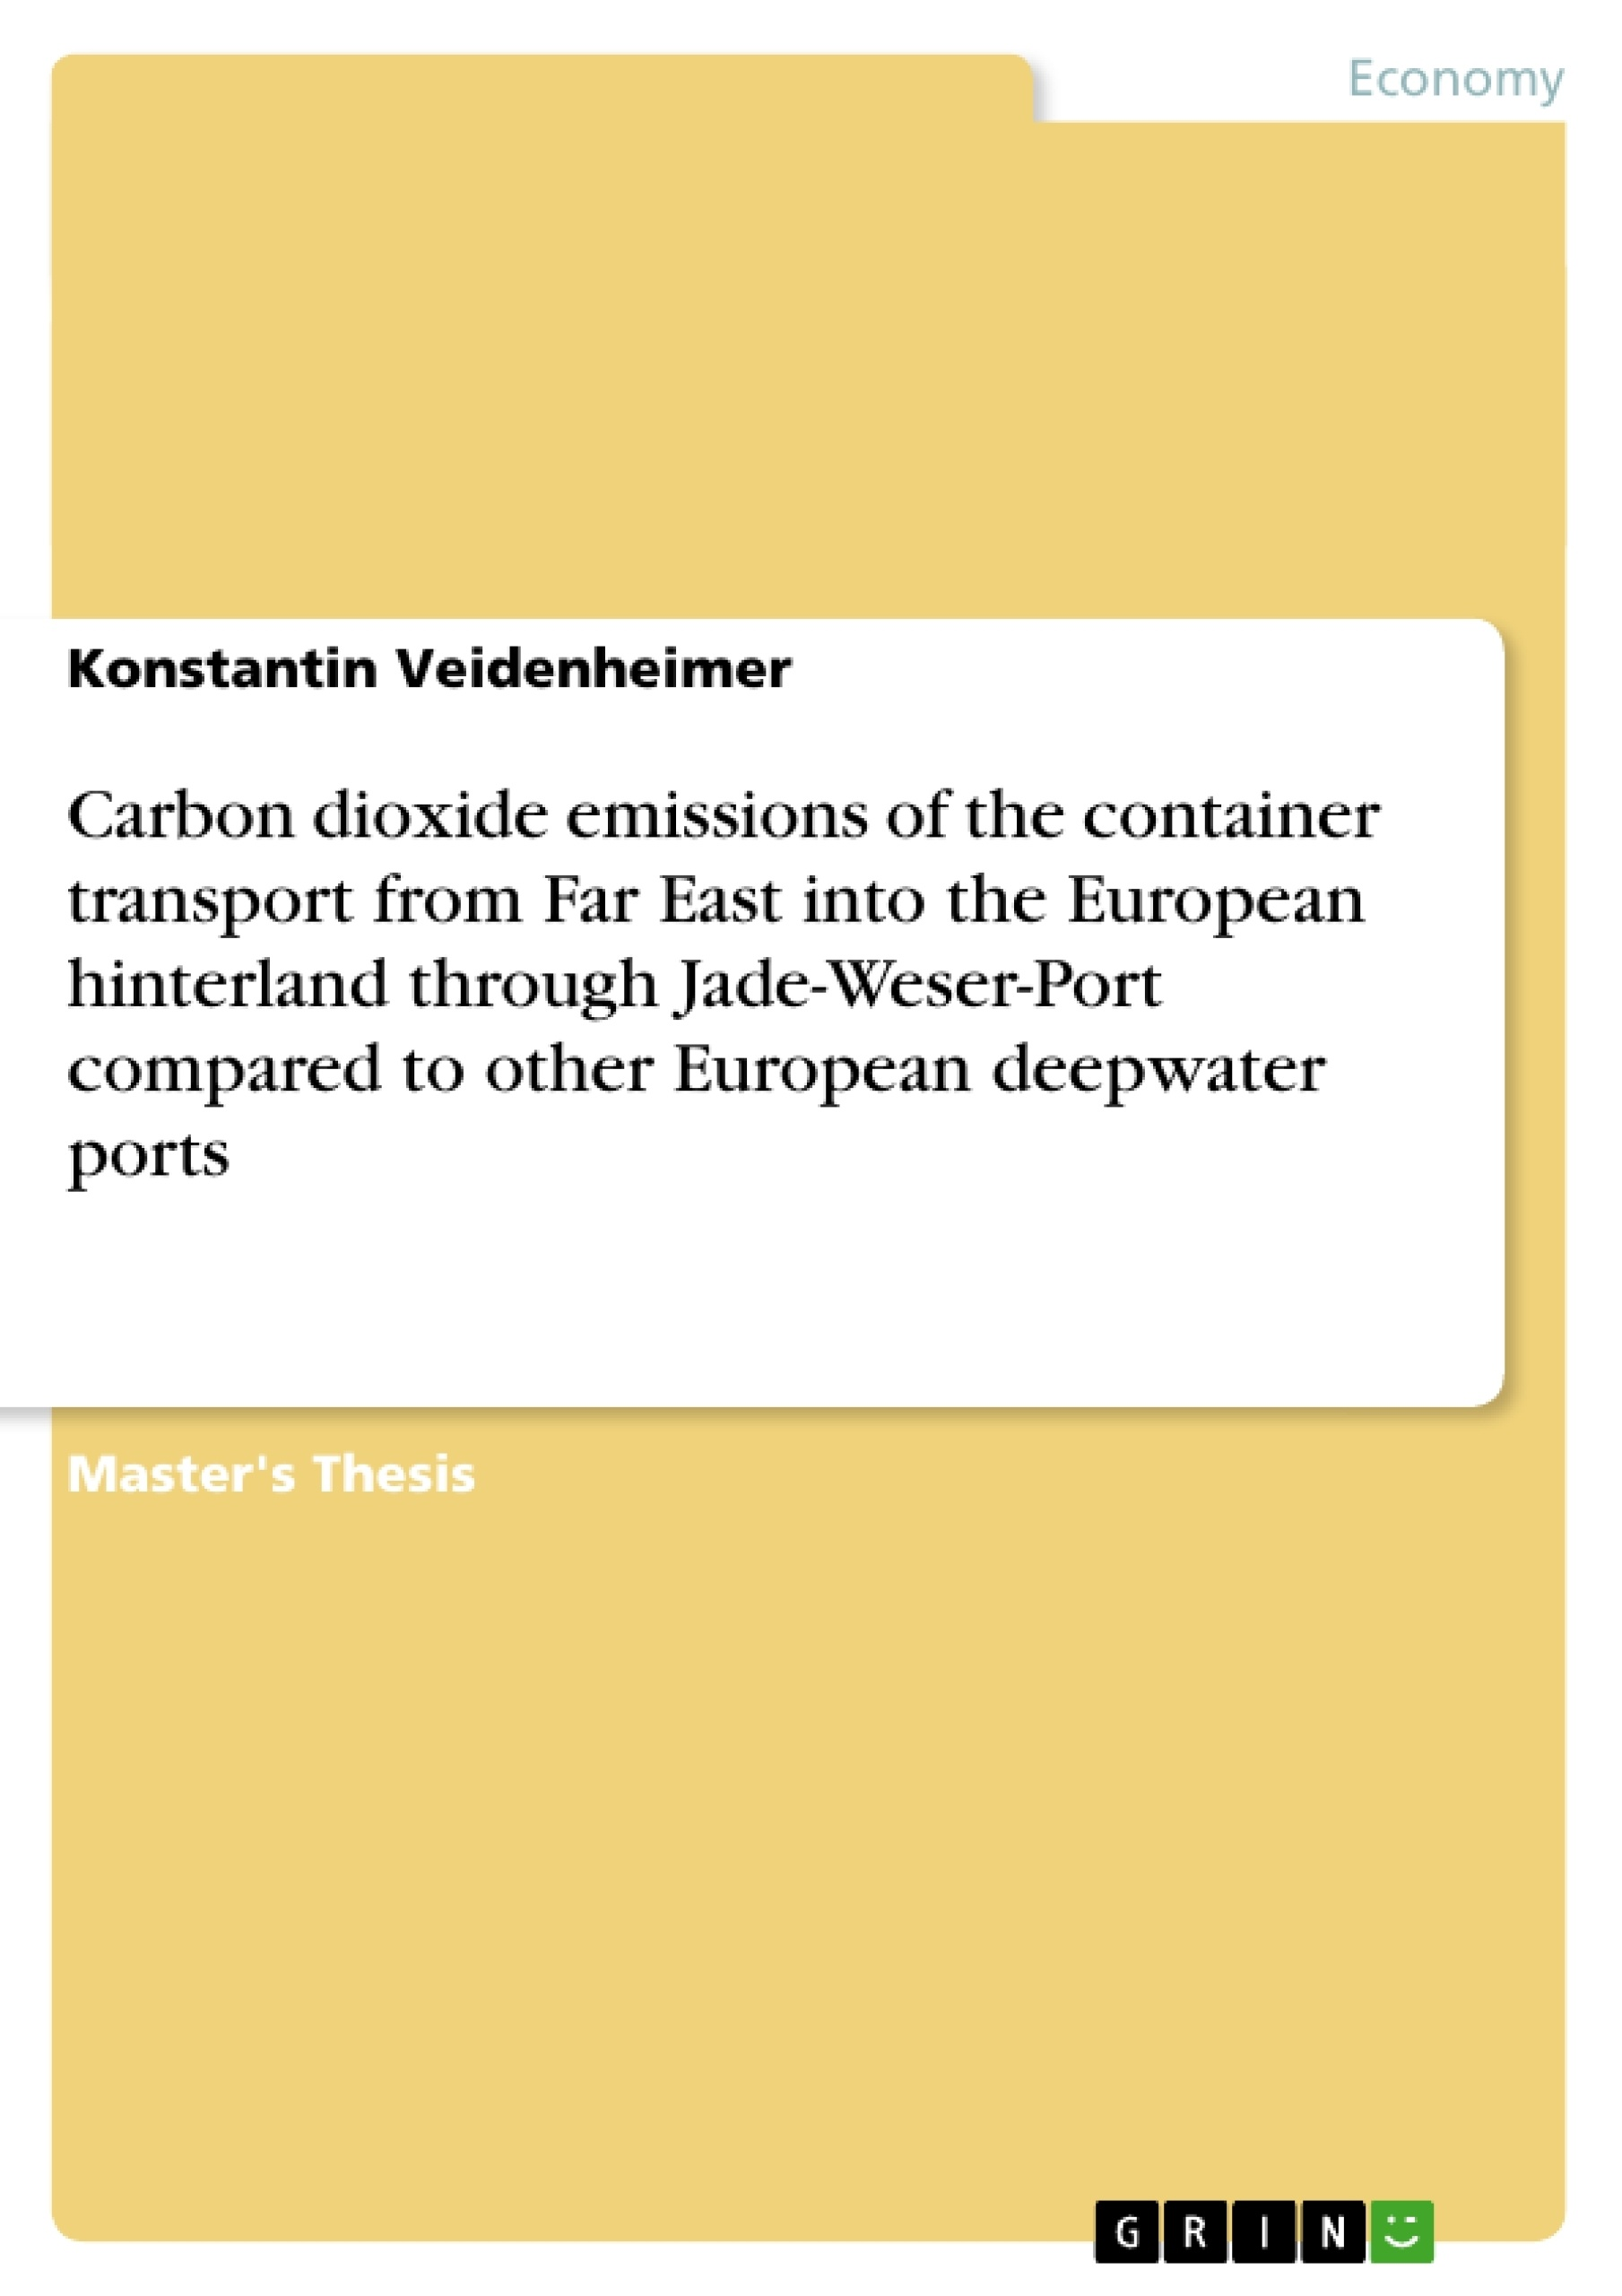 Title: Carbon dioxide emissions of the container transport from Far East into the European hinterland through Jade-Weser-Port compared to other European deepwater ports